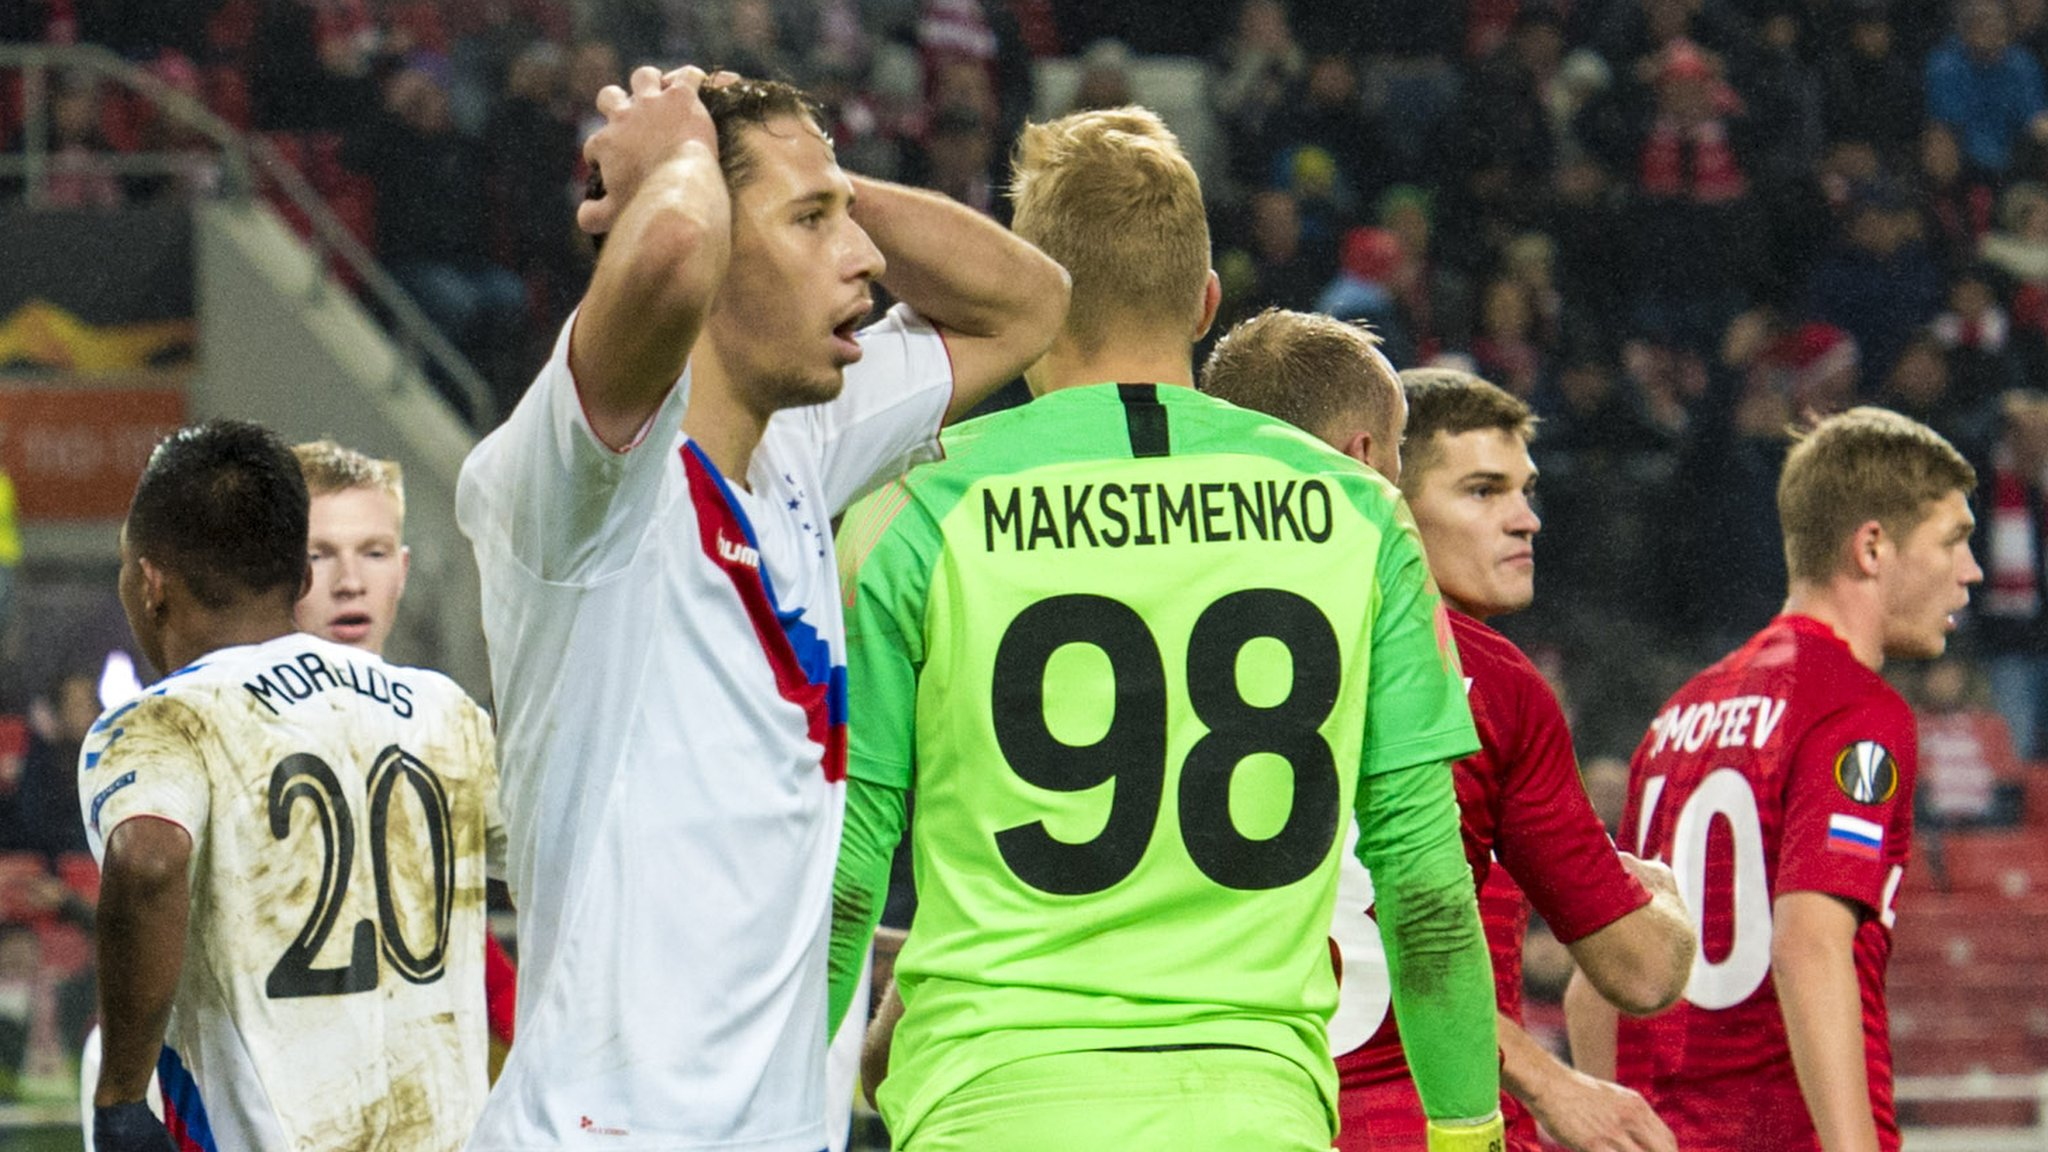 Nikola Katic: 'Unlucky' Rangers lost 'four stupid goals' to Spartak Moscow